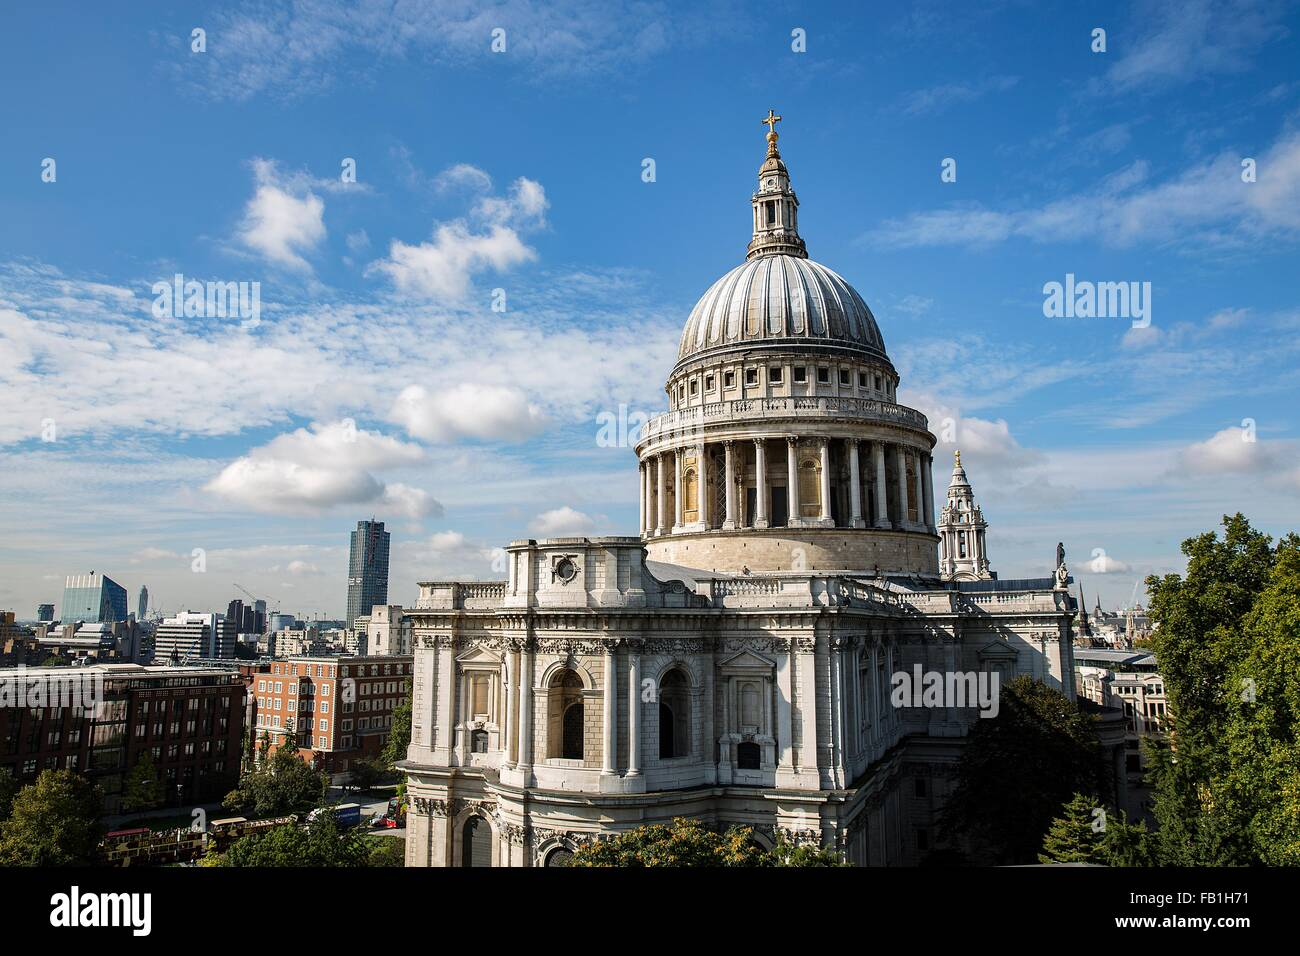 Elevated view of St Pauls Cathedral, London, UK - Stock Image